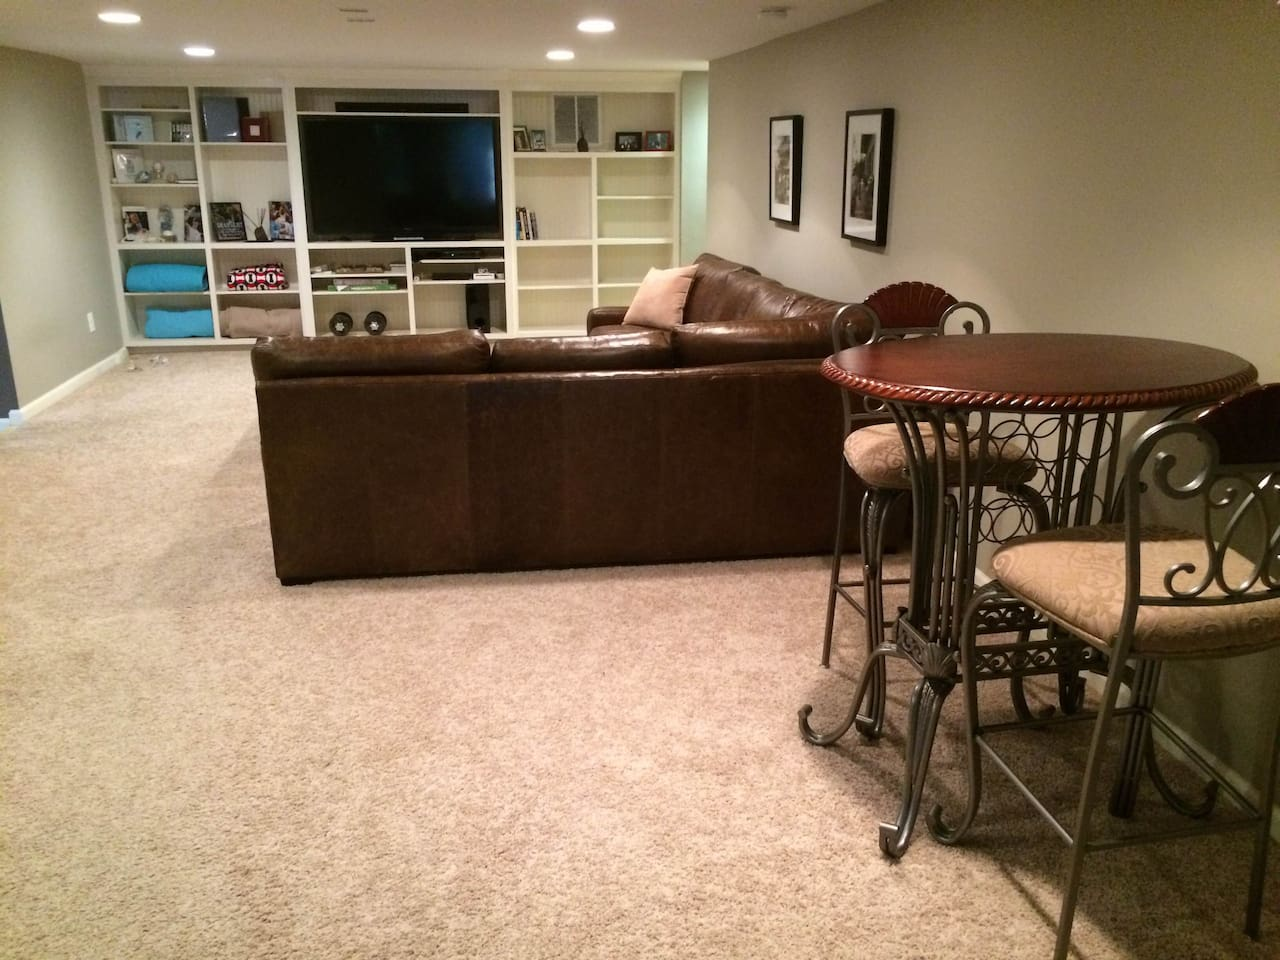 Basement apartment creating an airbnb worthy basement with basement - Downtown Private Entrance Basement Suite Near Hpu Houses For Rent In High Point North Carolina United States